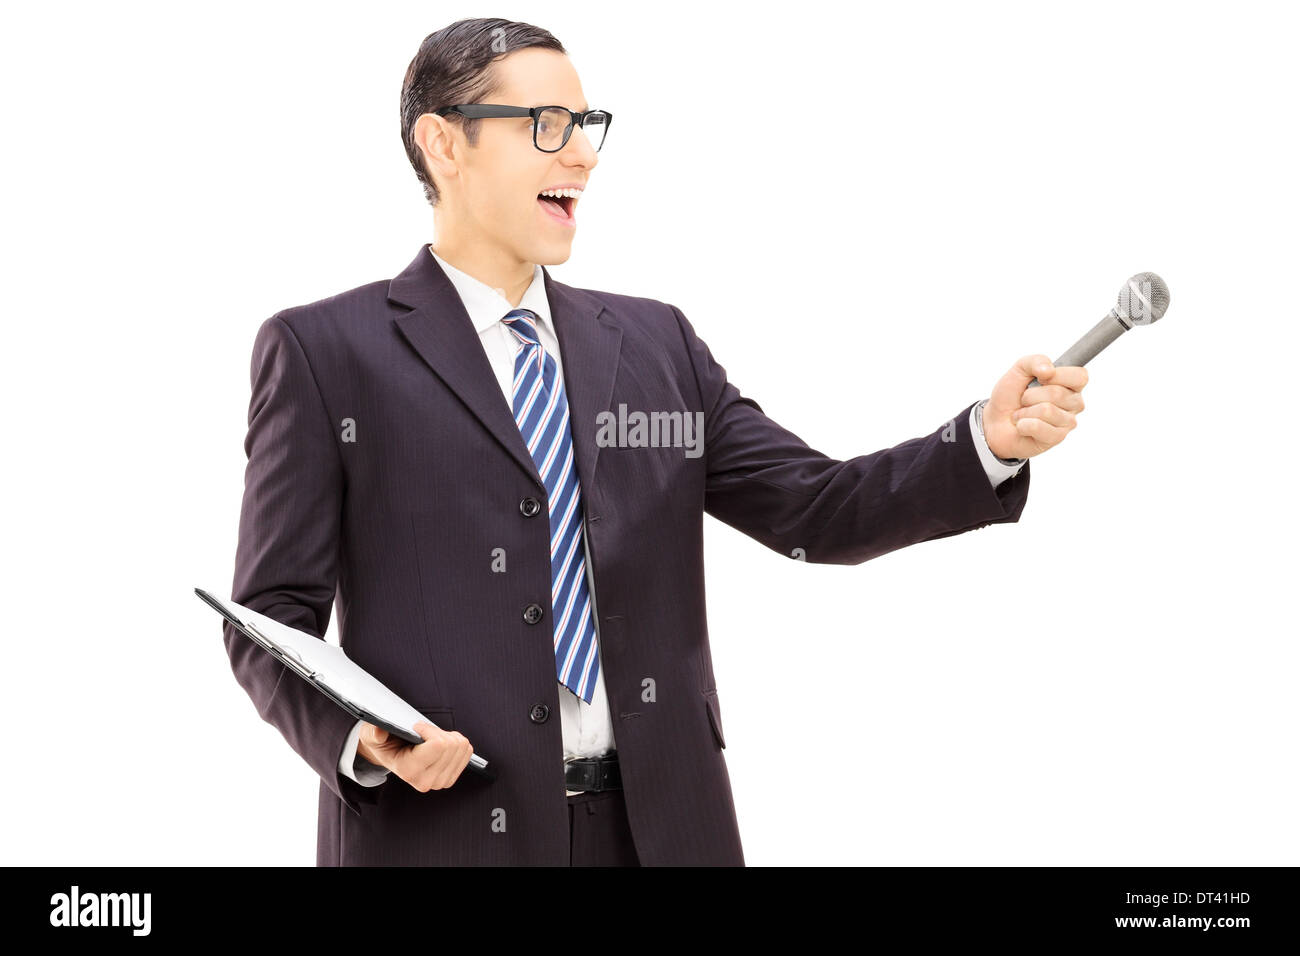 Survey conductor holding clipboard and microphone - Stock Image